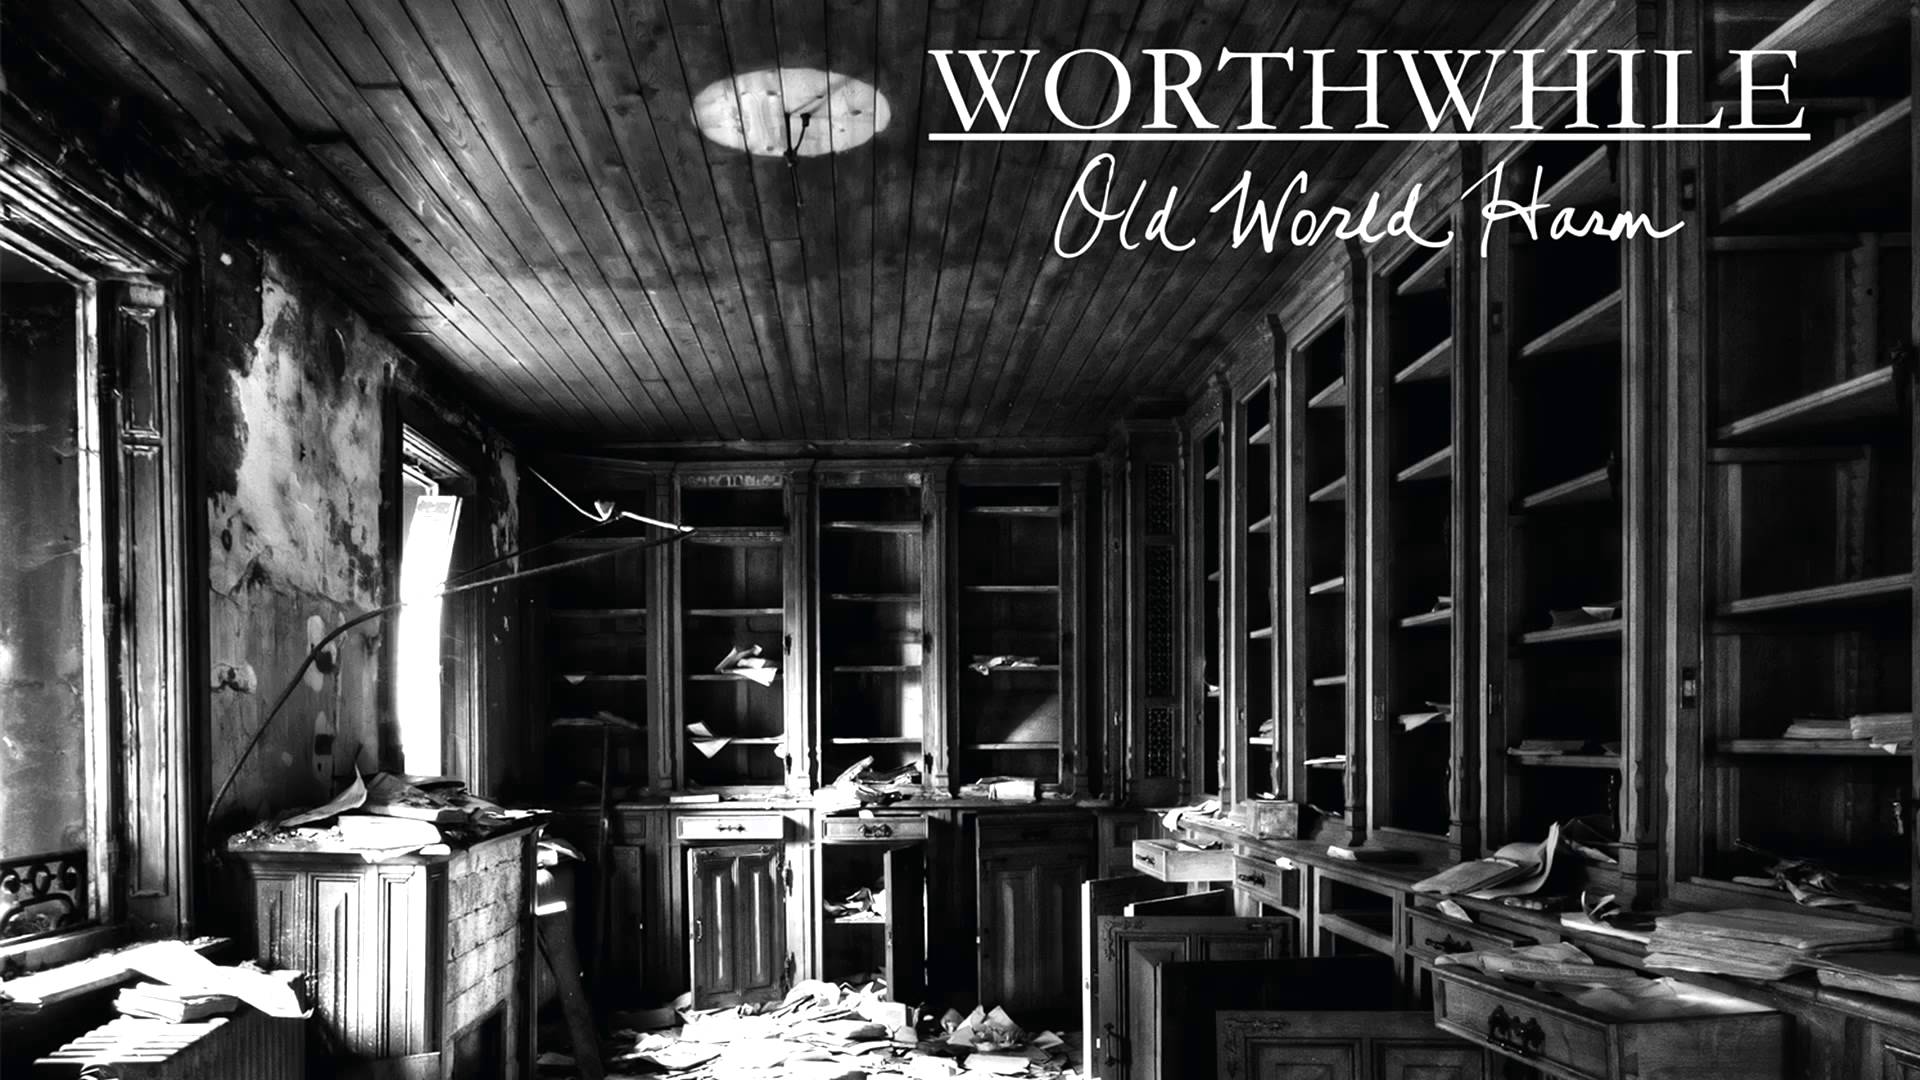 Worthwhile - Journal Of A Mad Scientist